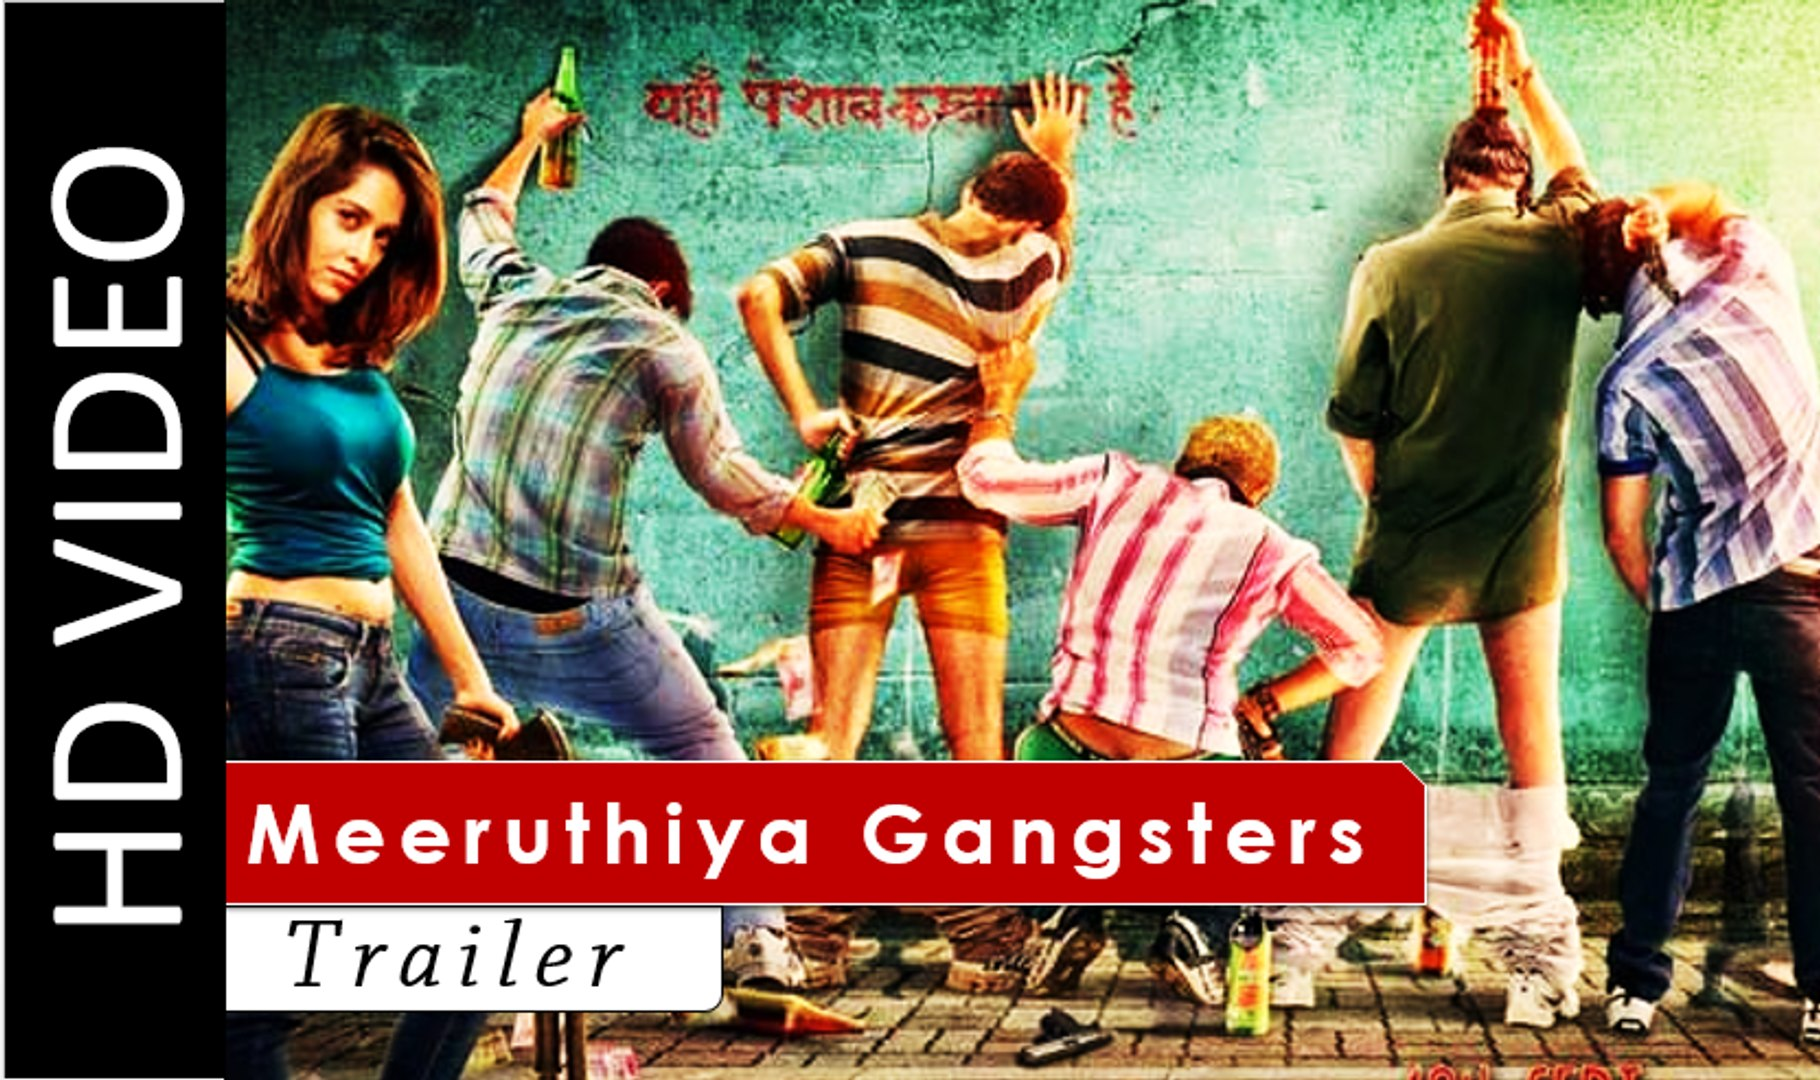 Meeruthiya Gangsters - Full HD Hindi Movie Trailer [2015]